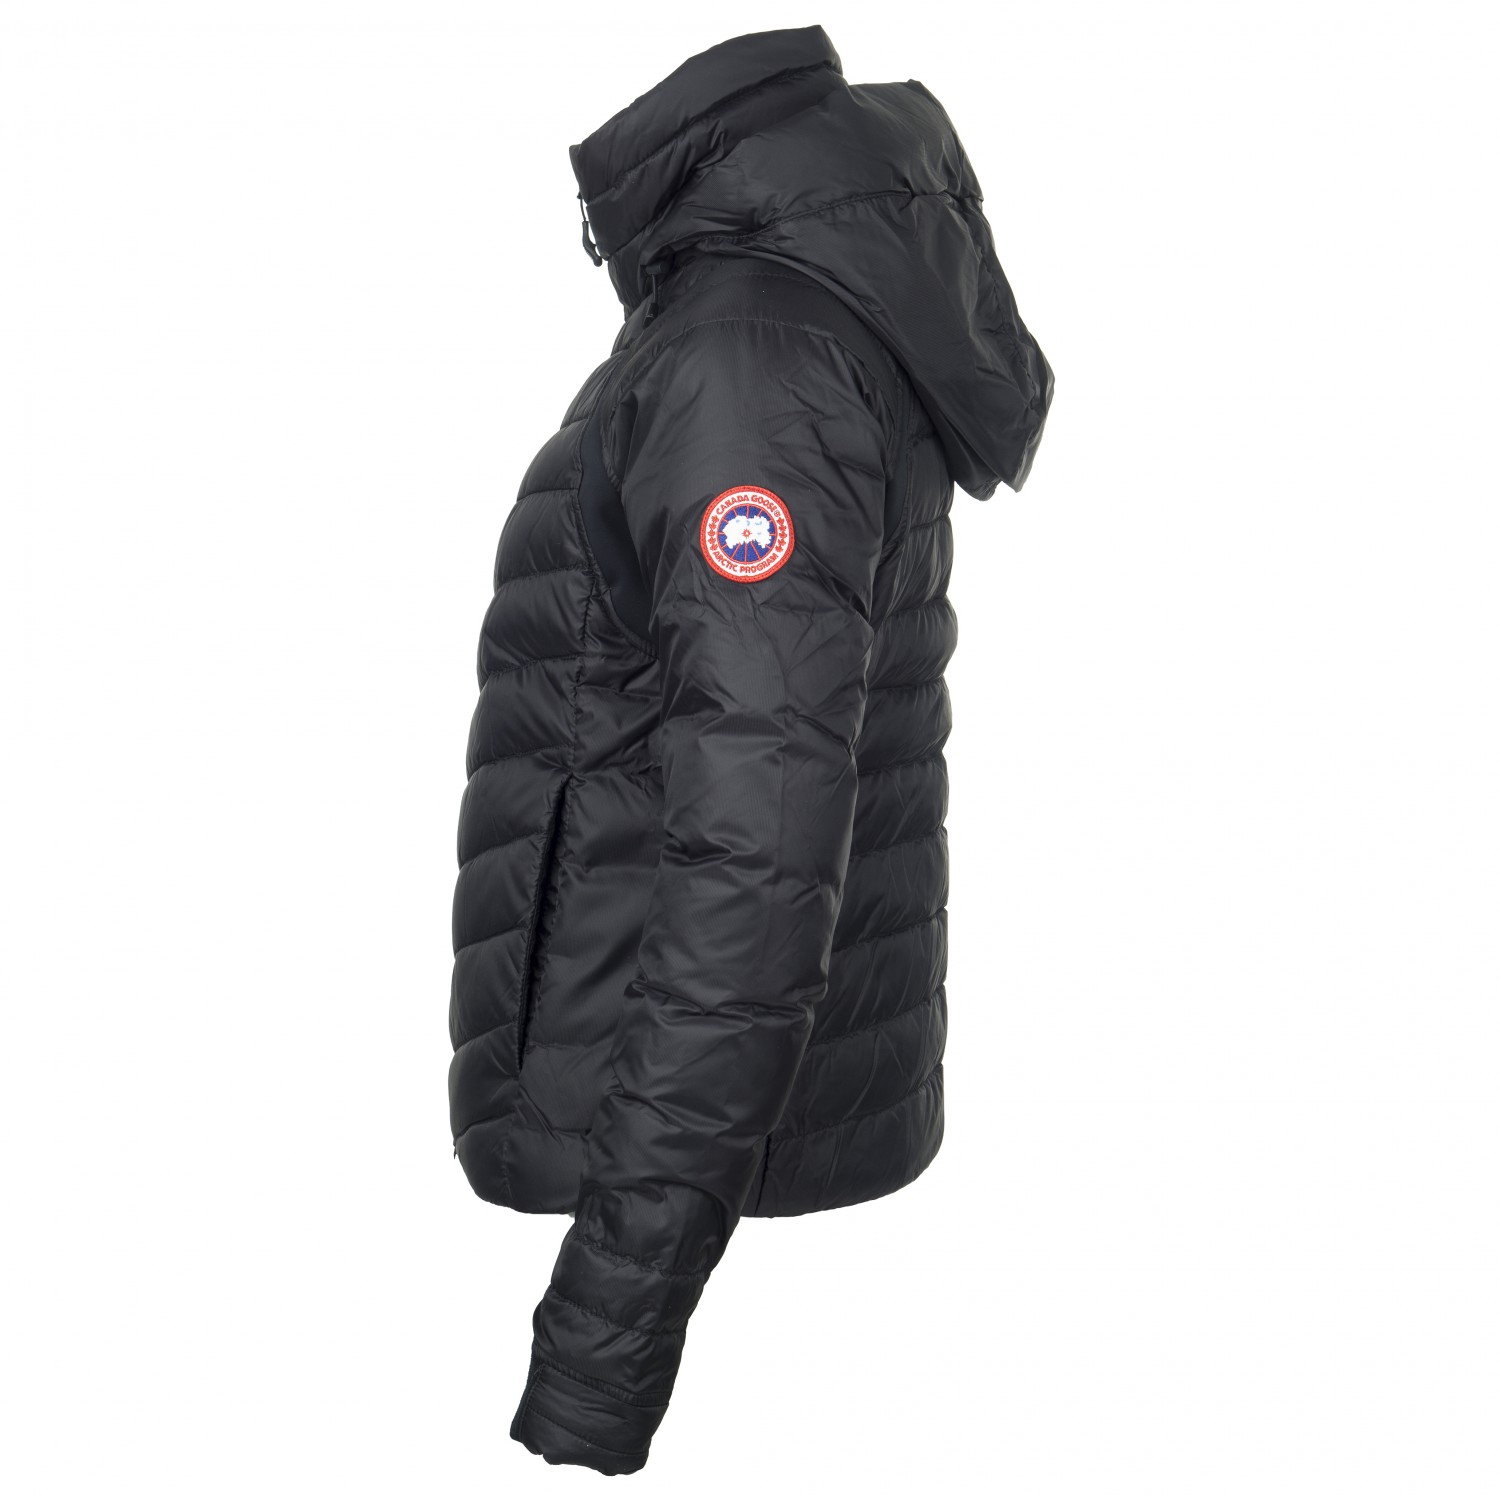 e92af8b8880 Canada Goose Hybridge Base Jacket - Down Jacket Women's | Free UK ...